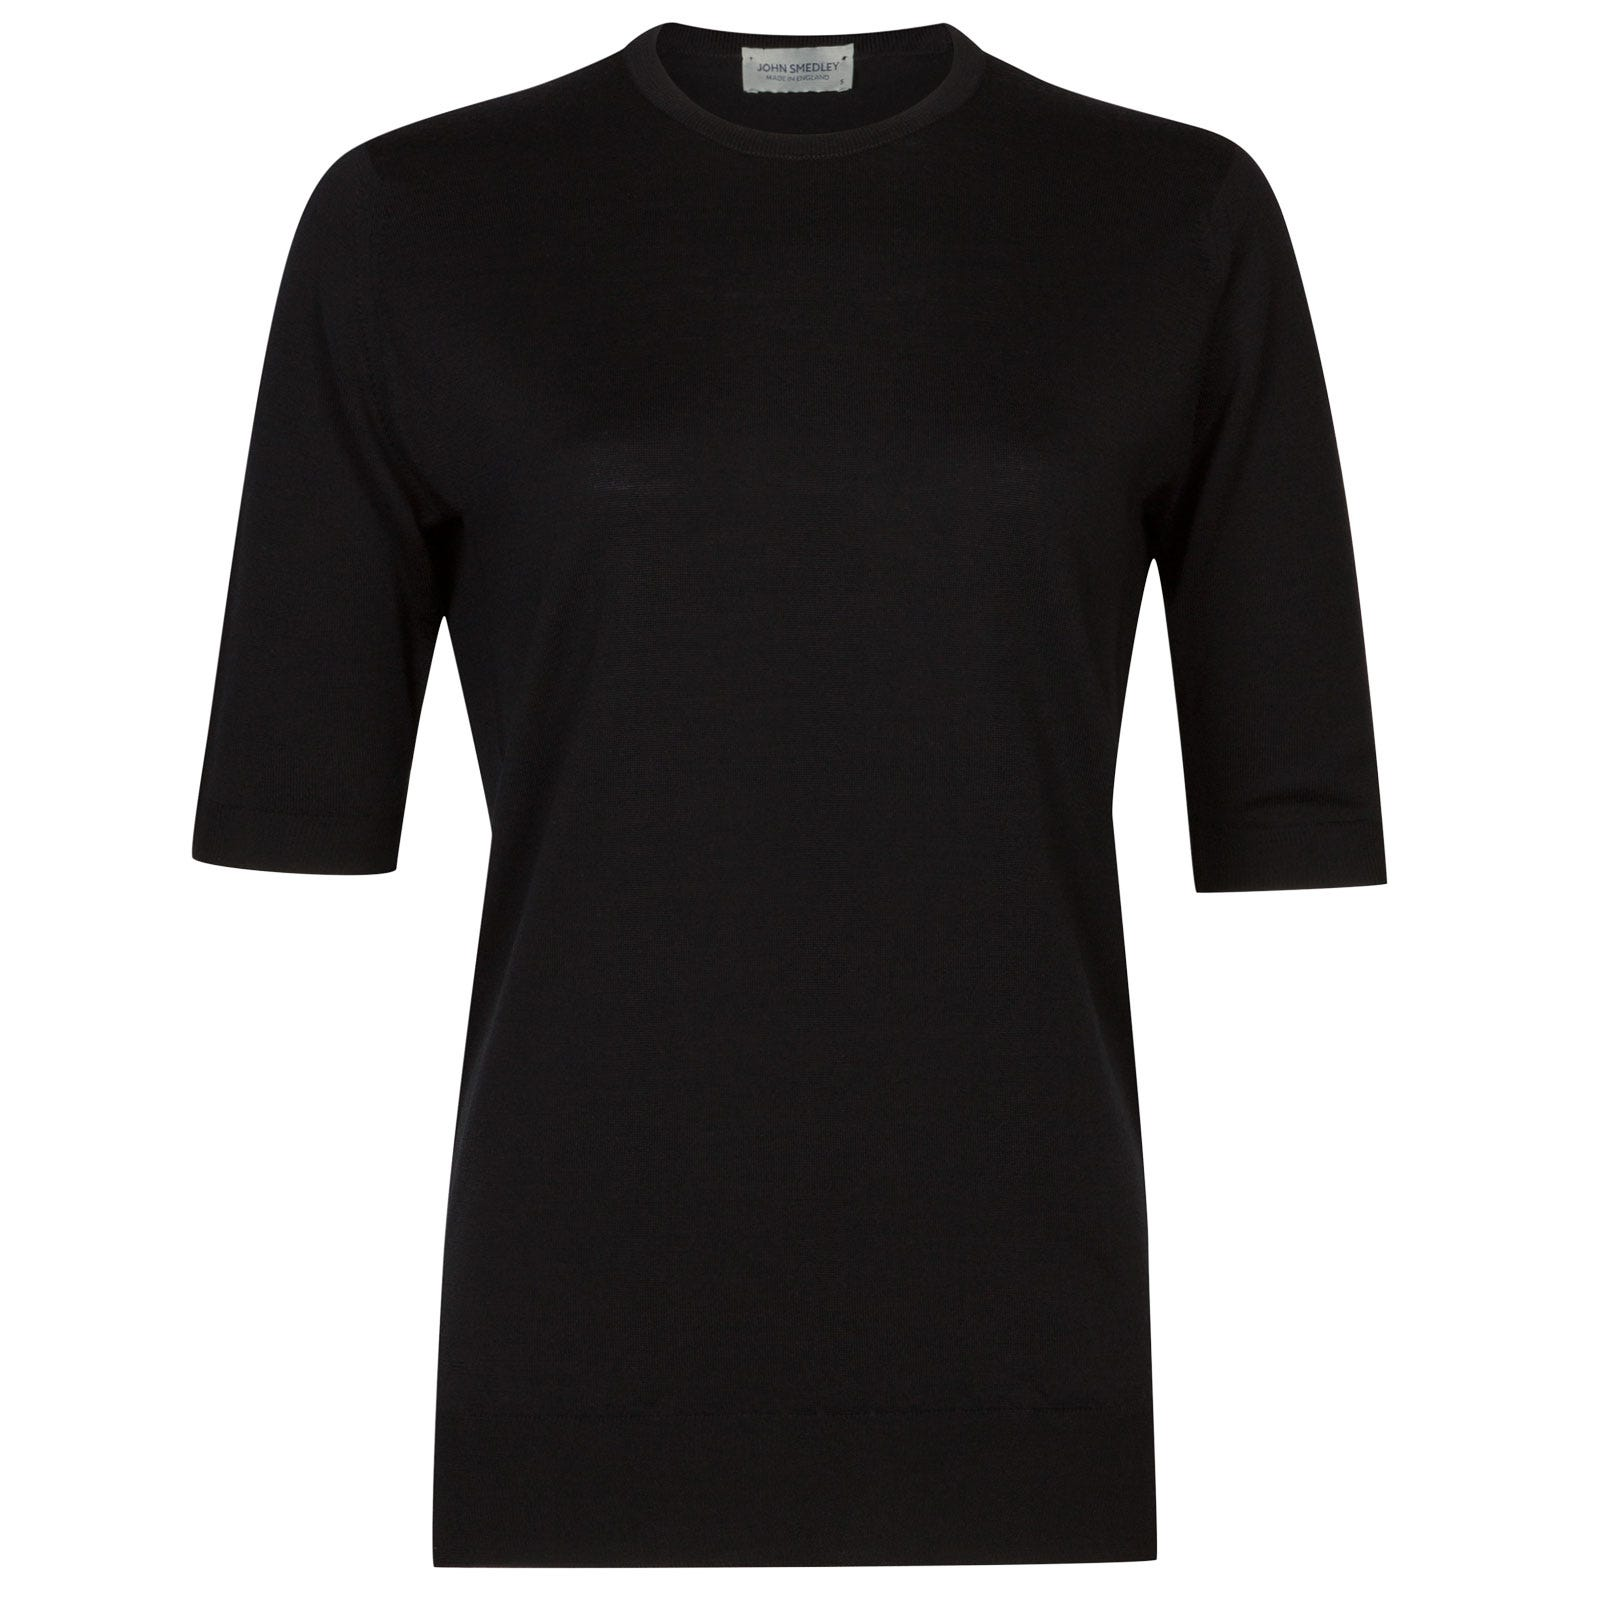 John Smedley lindley Merino Wool T-shirt in Black-S